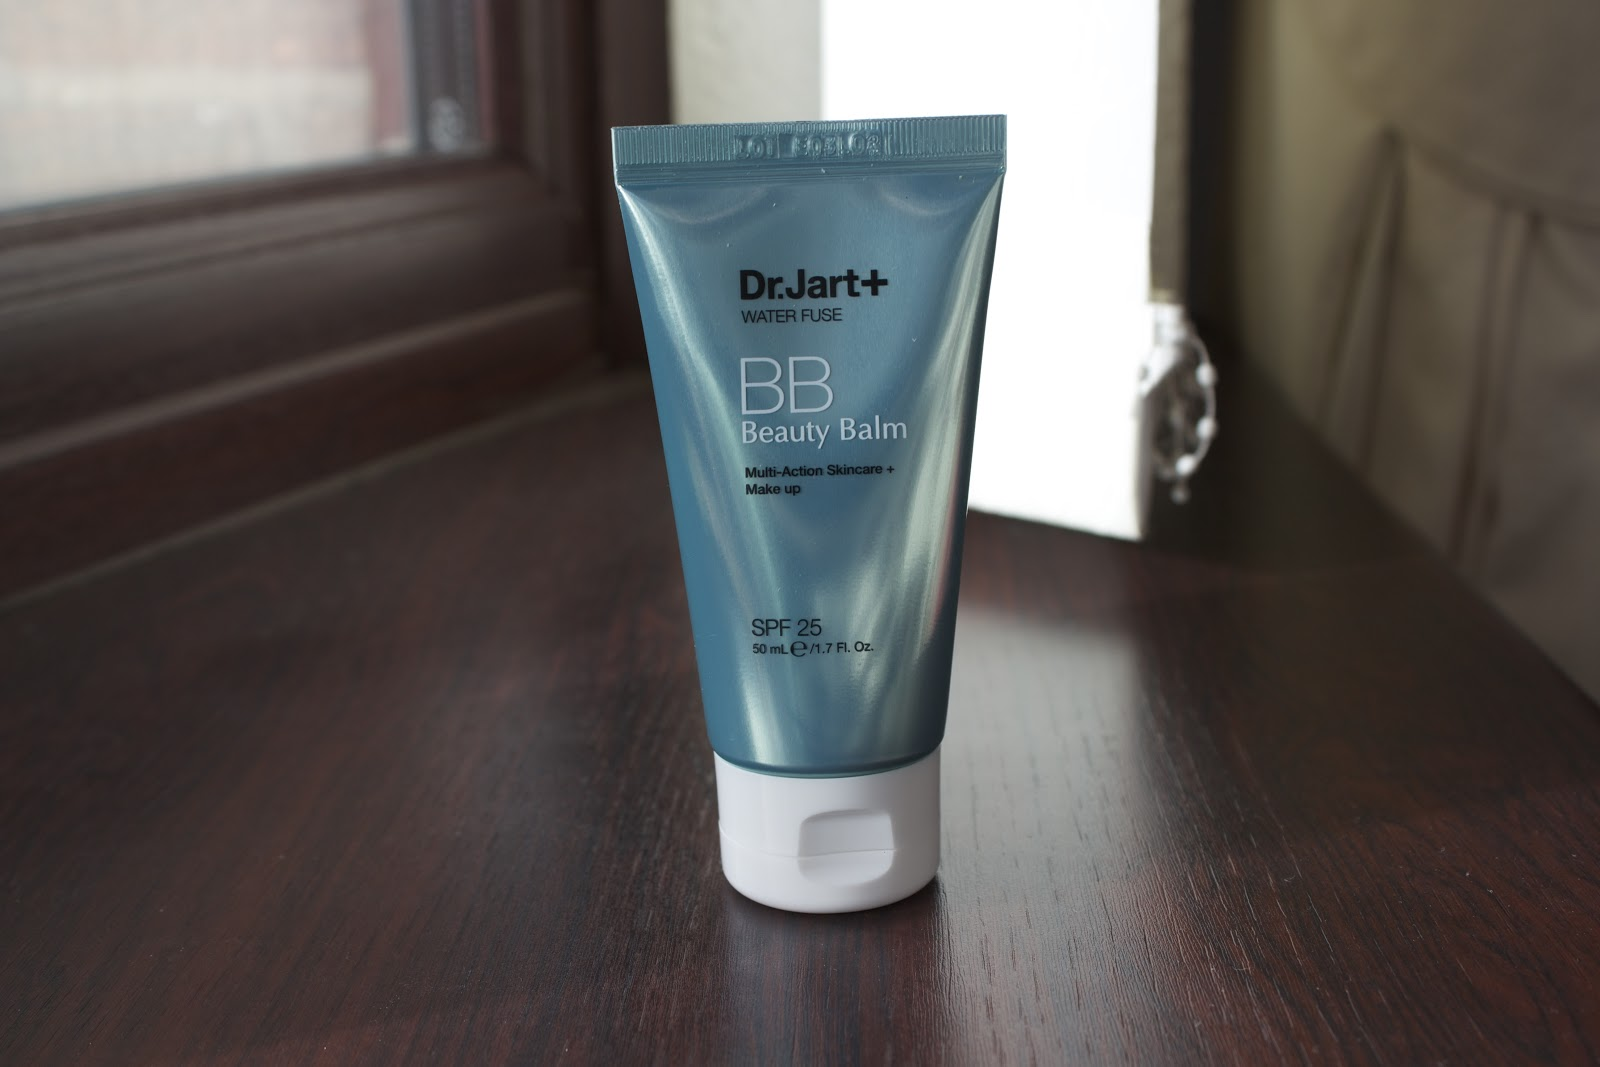 Dr Jart Water Fuse Beauty Balm Bb Cream Review